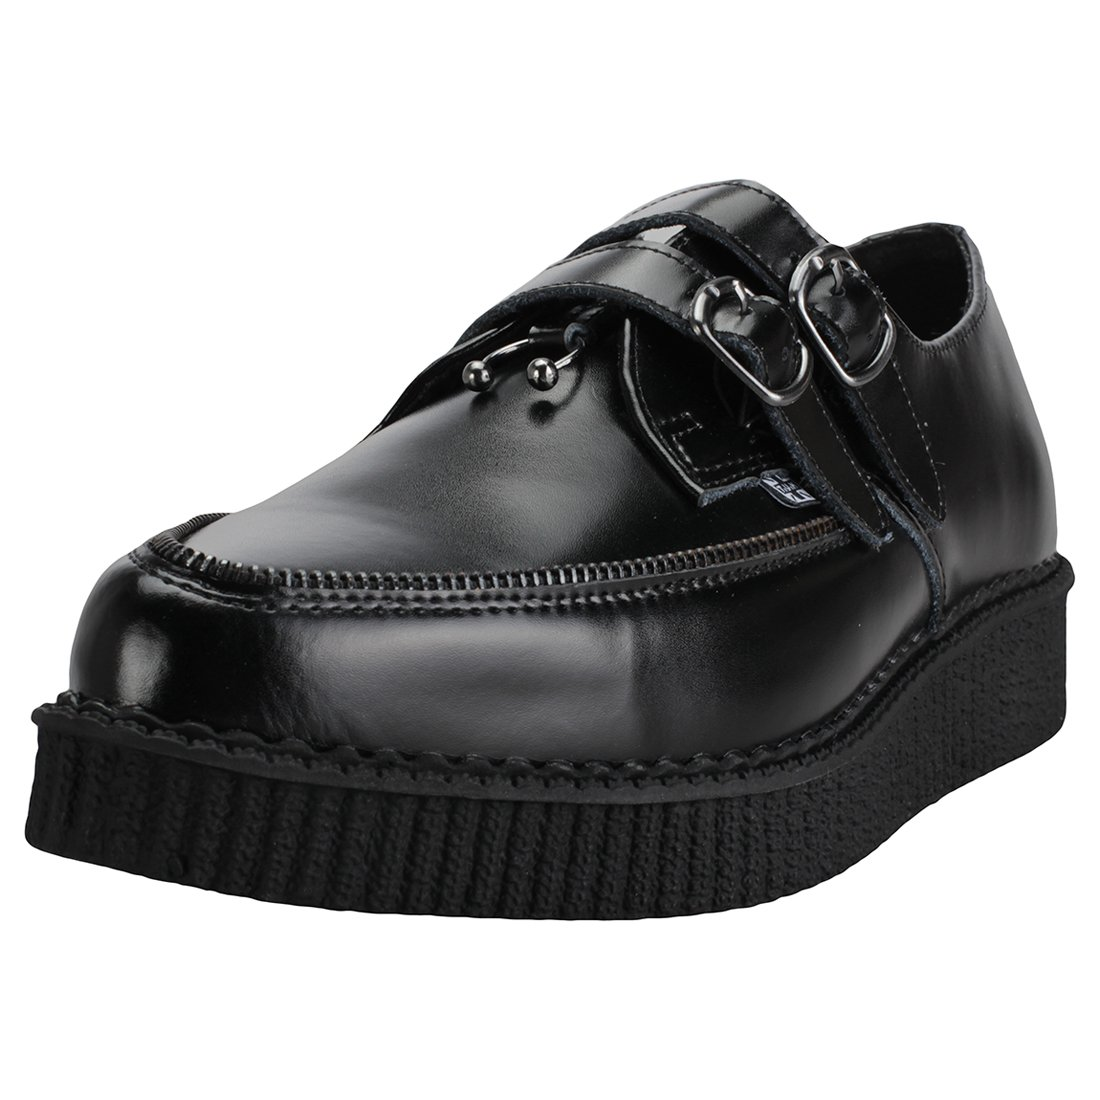 TALLA 43 EU. T.U.K Zipper Pierced Pointed Creeper Hombres Zapatos